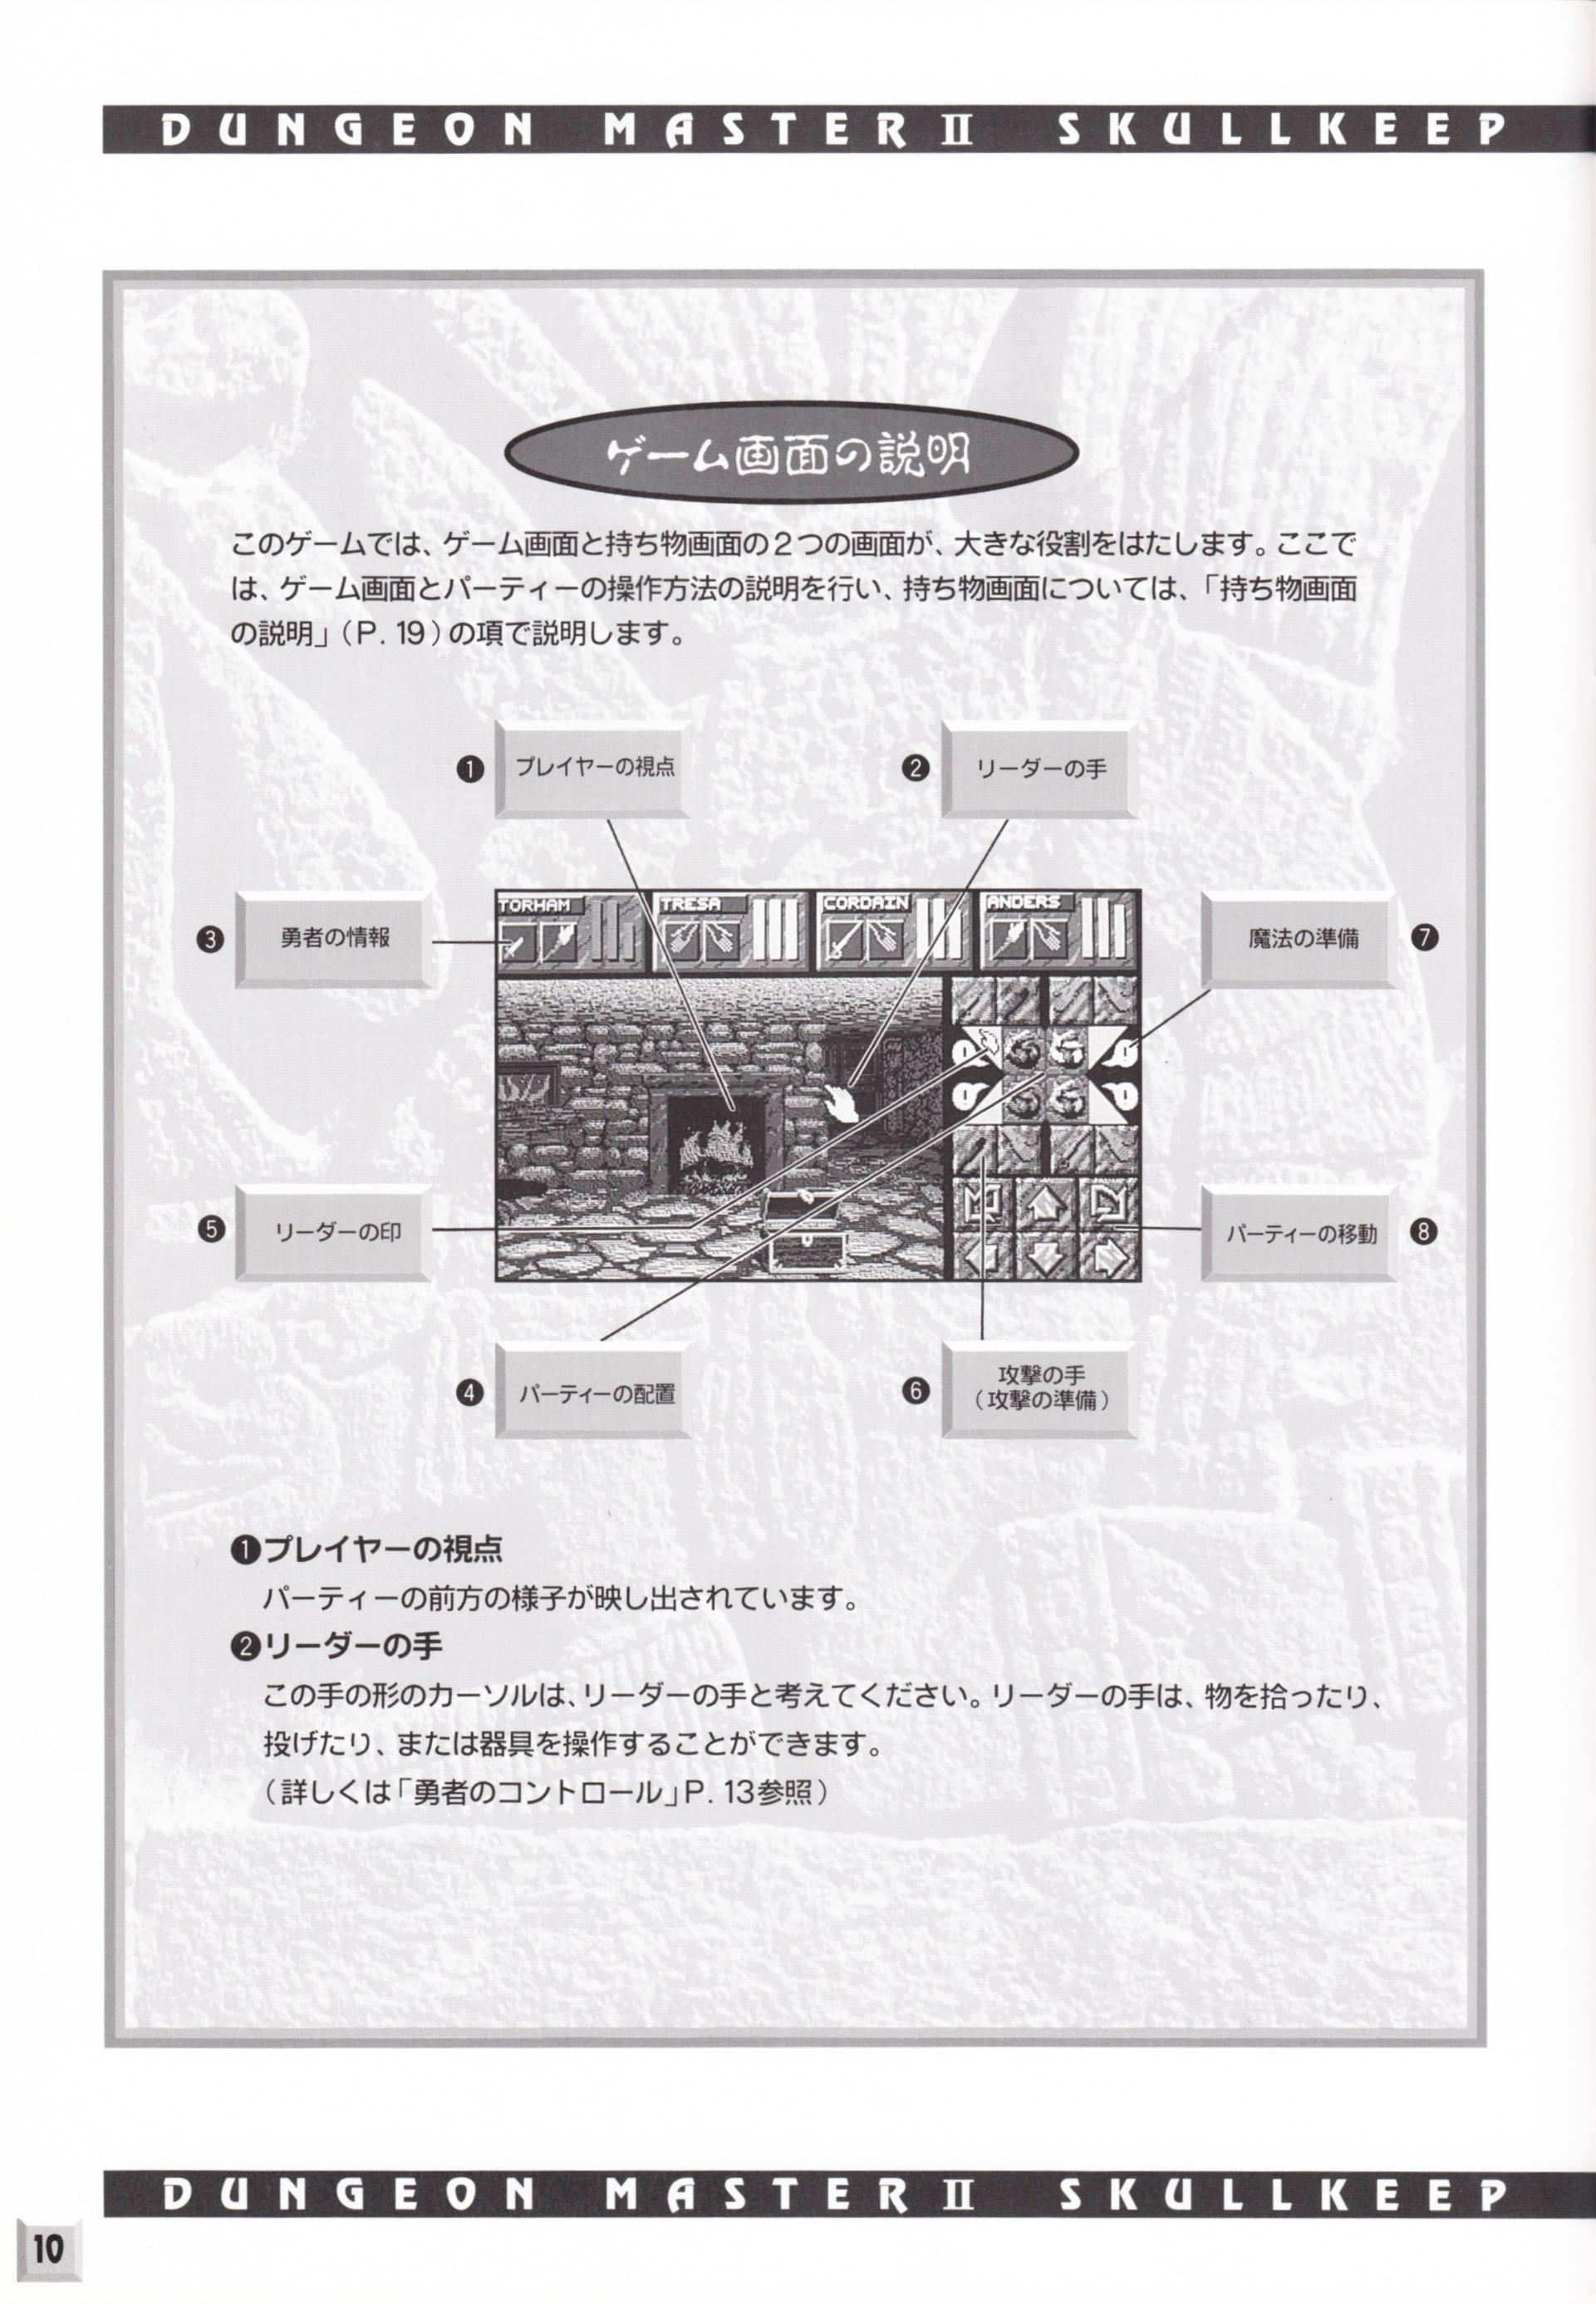 Game - Dungeon Master II - JP - PC-9801 - 3.5-inch - An Operation Manual - Page 012 - Scan